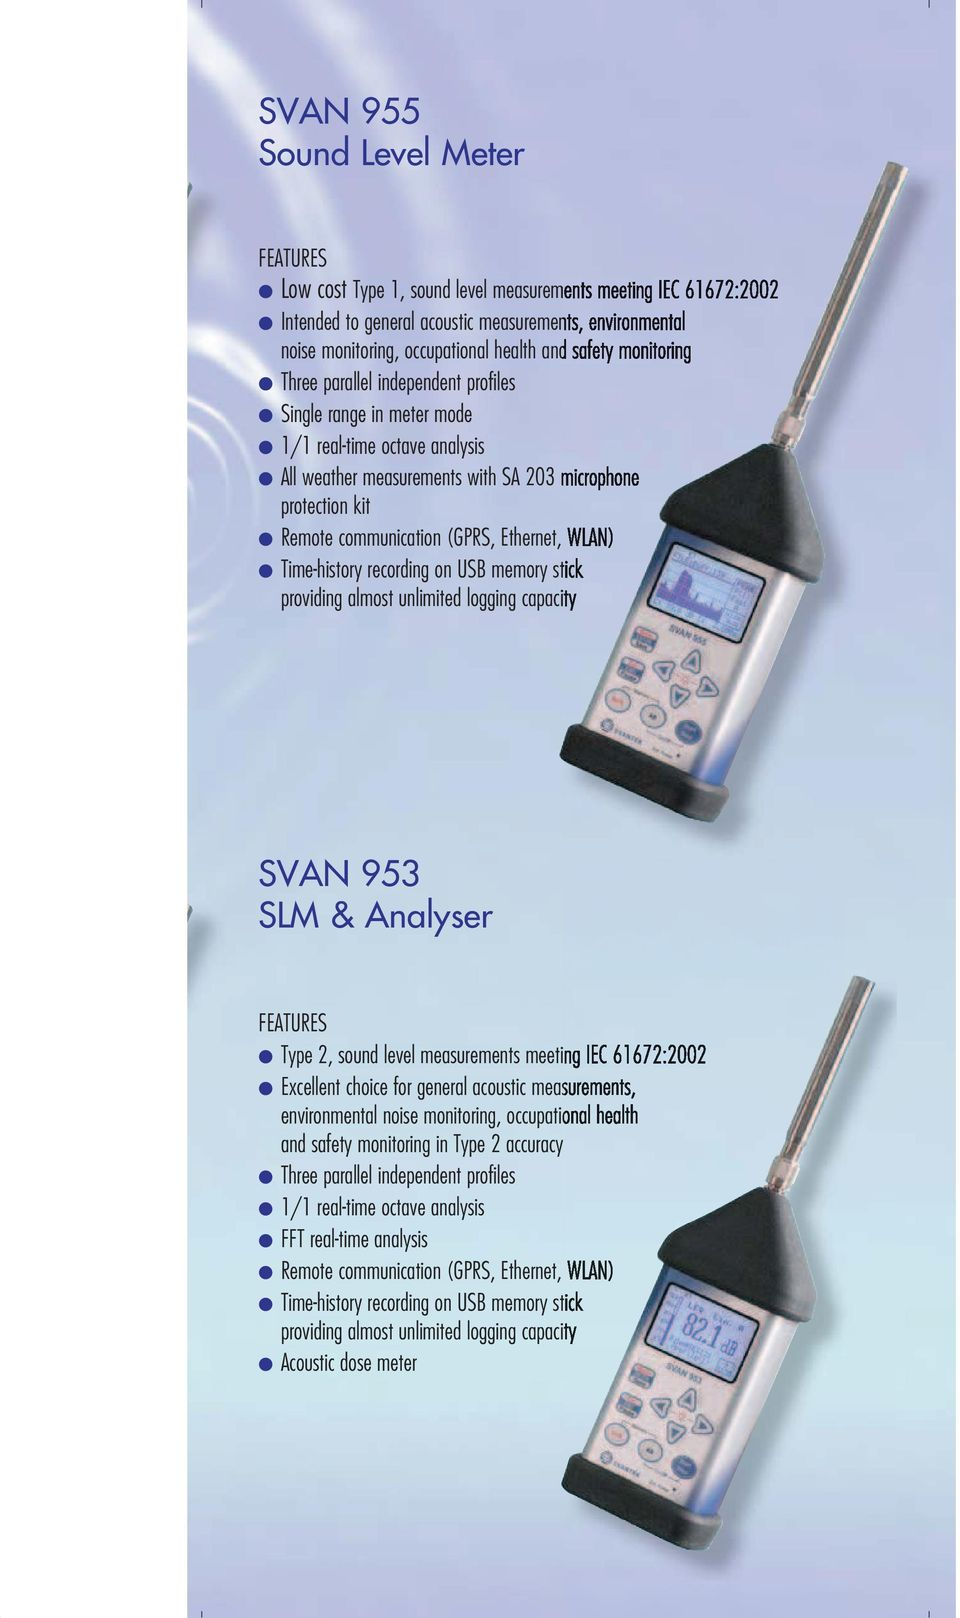 WLAN) Time-history recording on USB memory stick providing amost unimited ogging capacity SVAN 953 SLM & Anayser Type 2, sound eve measurements meeting IEC 61672:2002 Exceent choice for genera